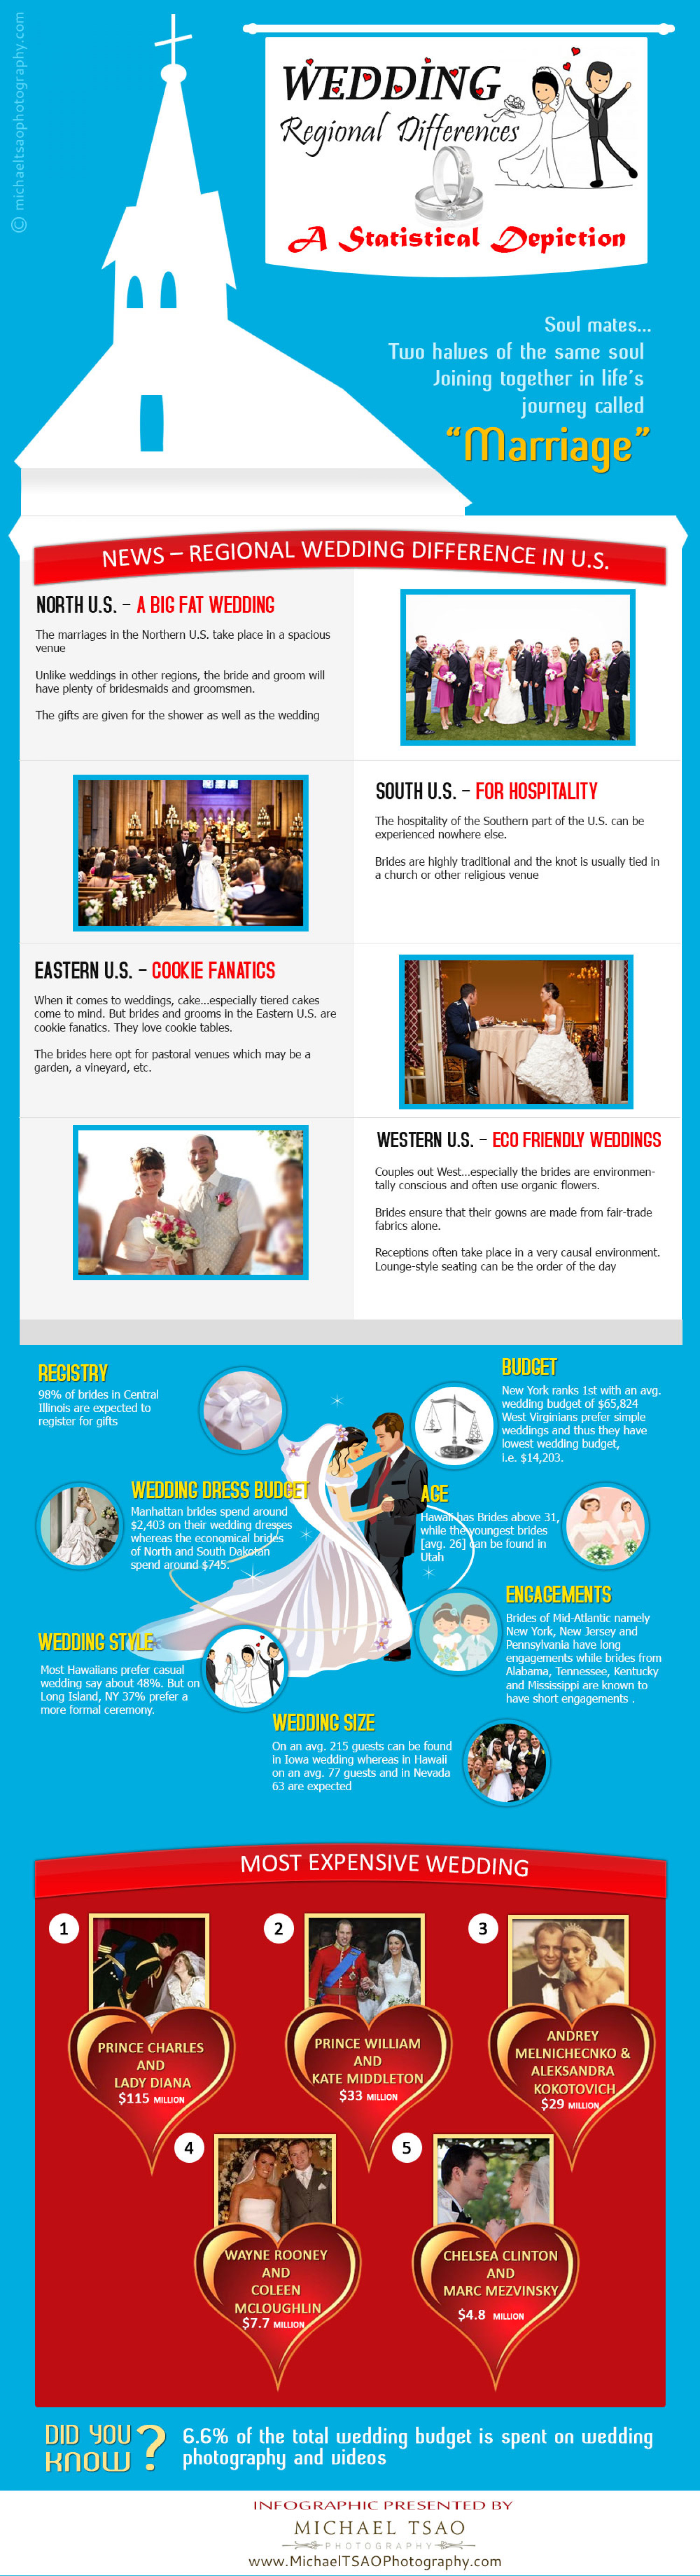 Wedding regional differences in the U.S. Infographic